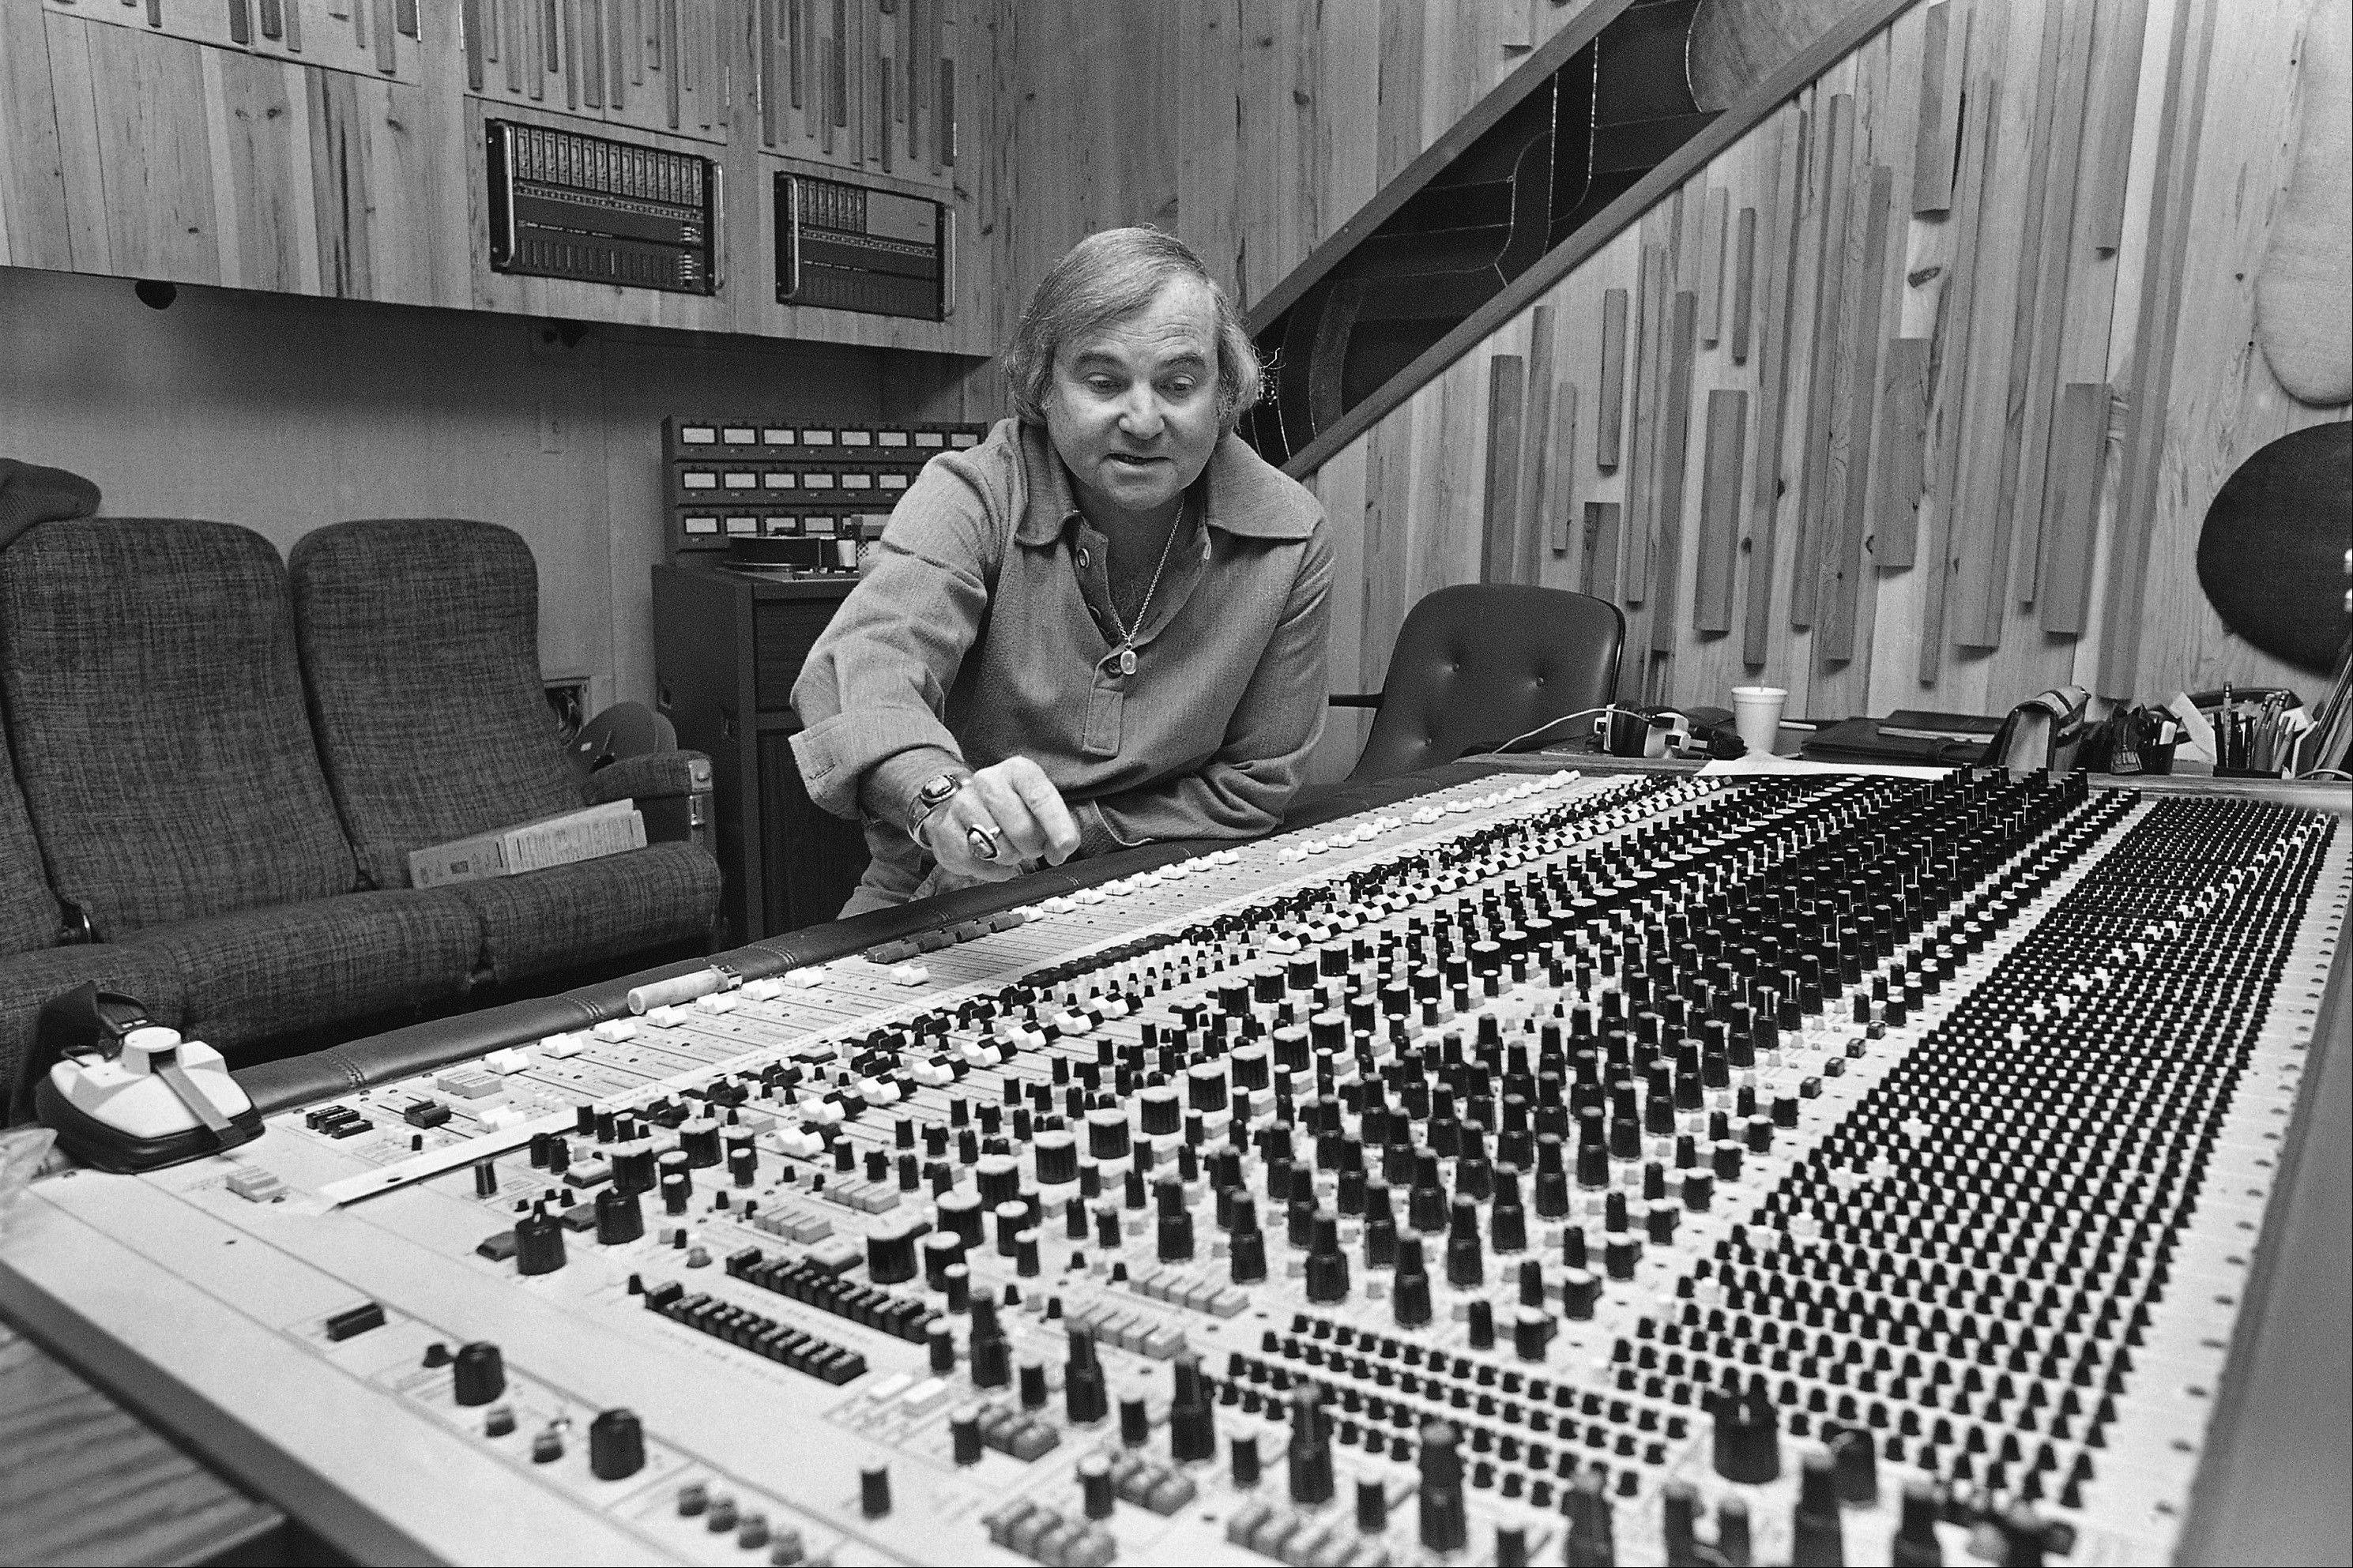 Mack Emerman, owner of Criteria Studios in Miami, points out one of the multitude of control knobs on a recording console.